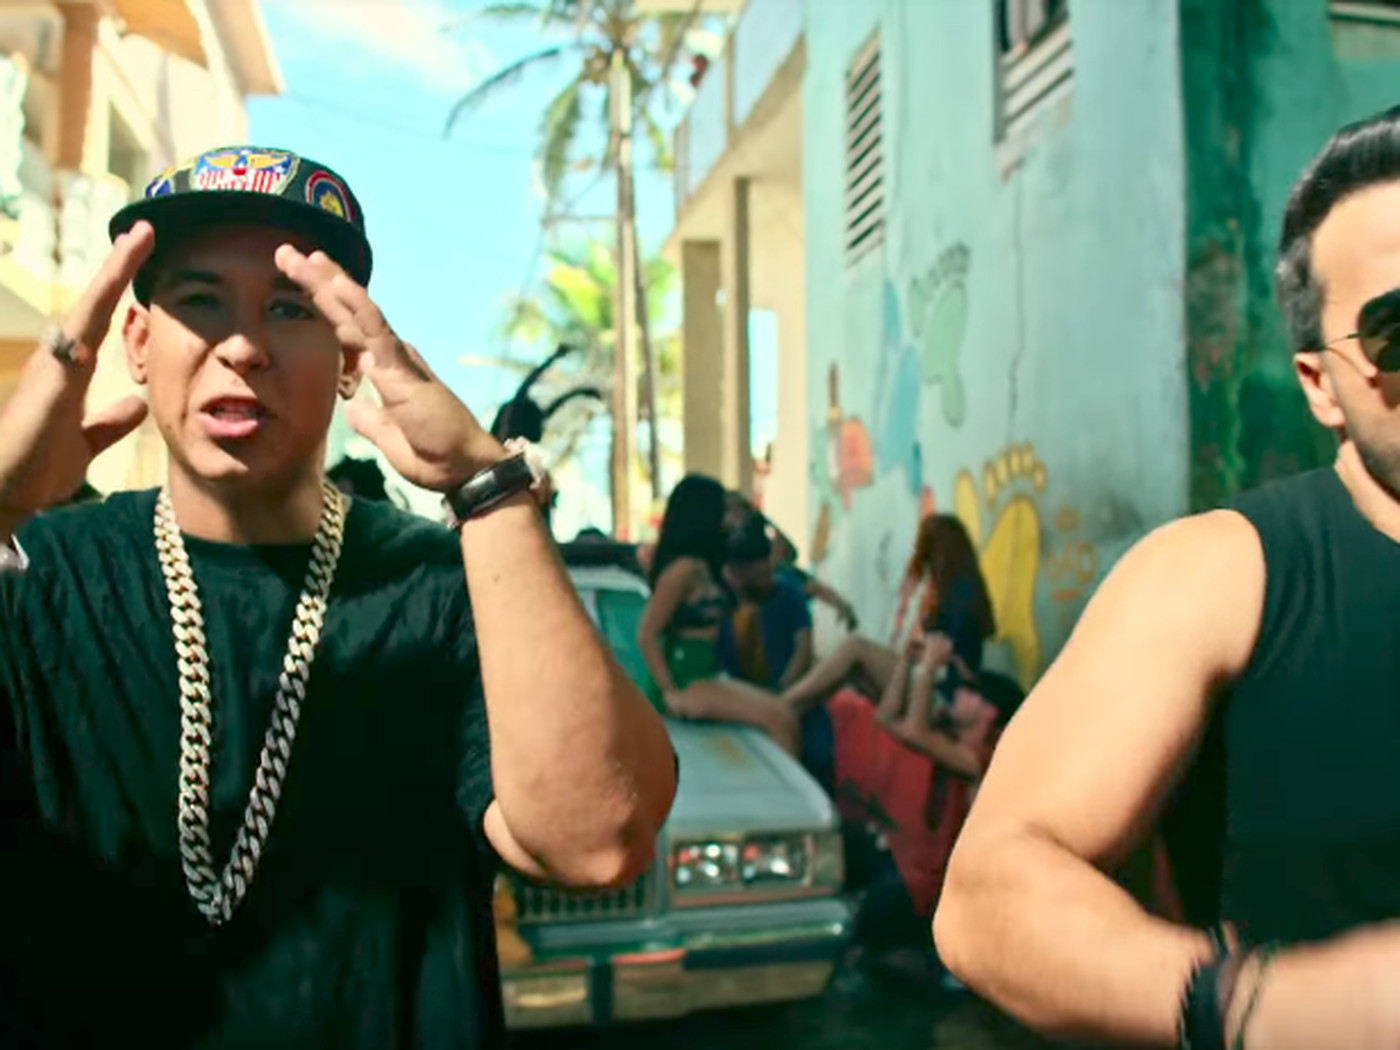 Luis Fonsi and Daddy Yankee's Despacito is the most-streamed